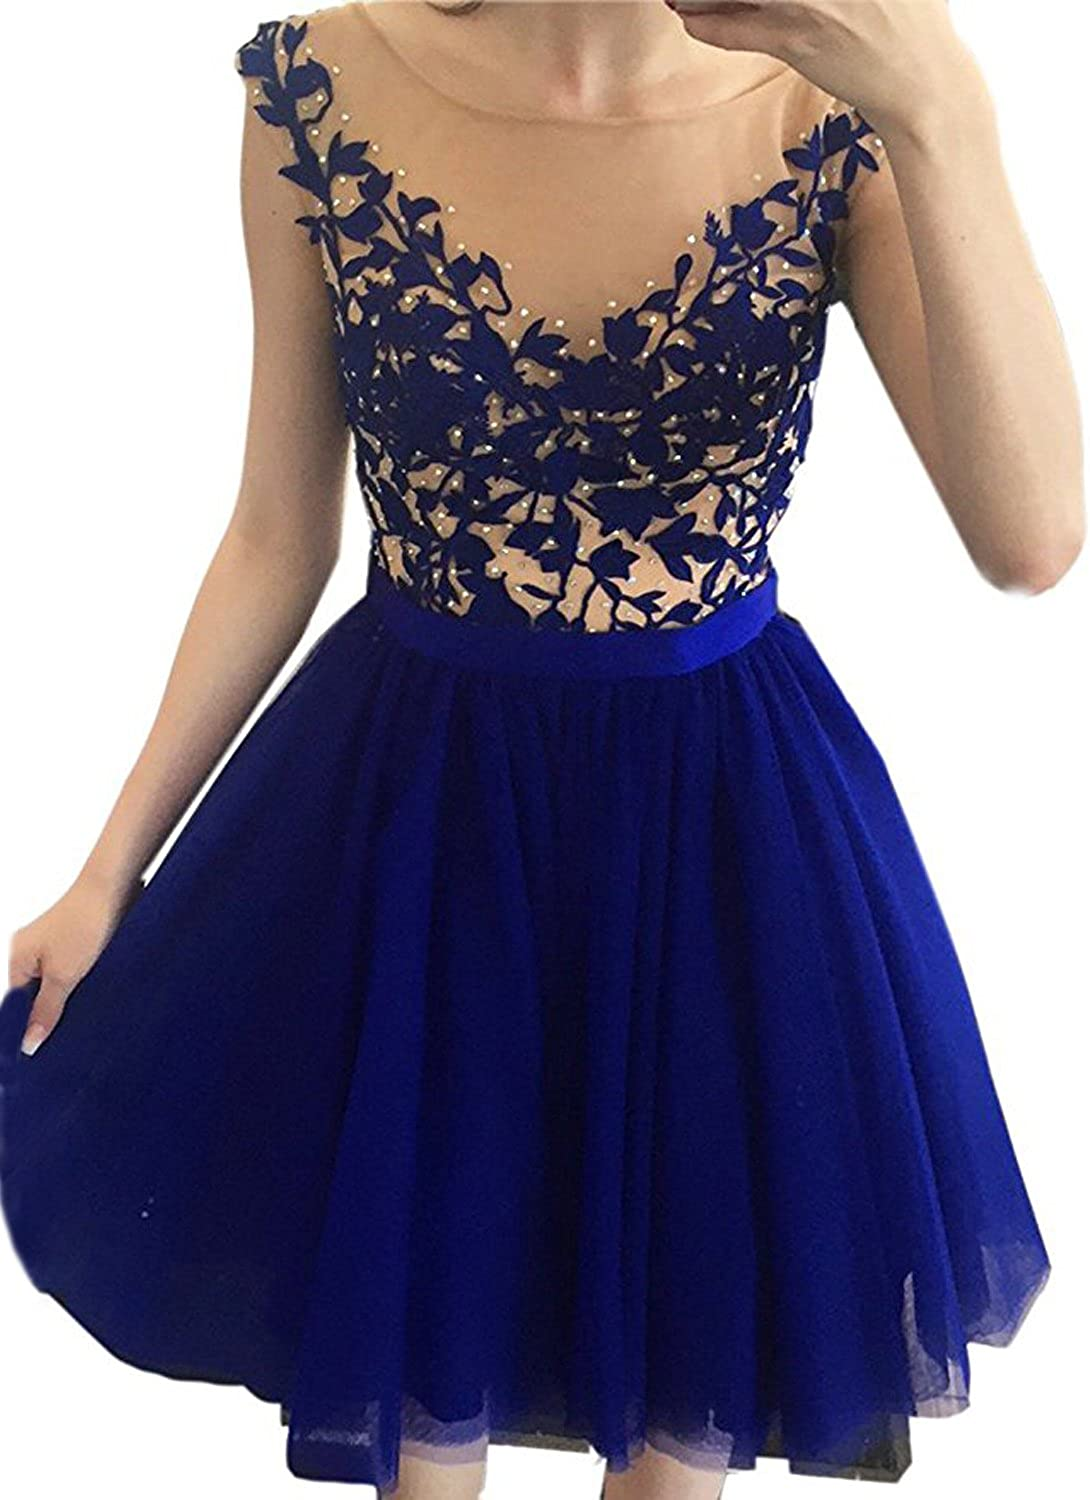 CIRCLEWLD Sheer Neck Homecoming Prom Dresses Short Appliques Beads Women's Plus Size Gown H30